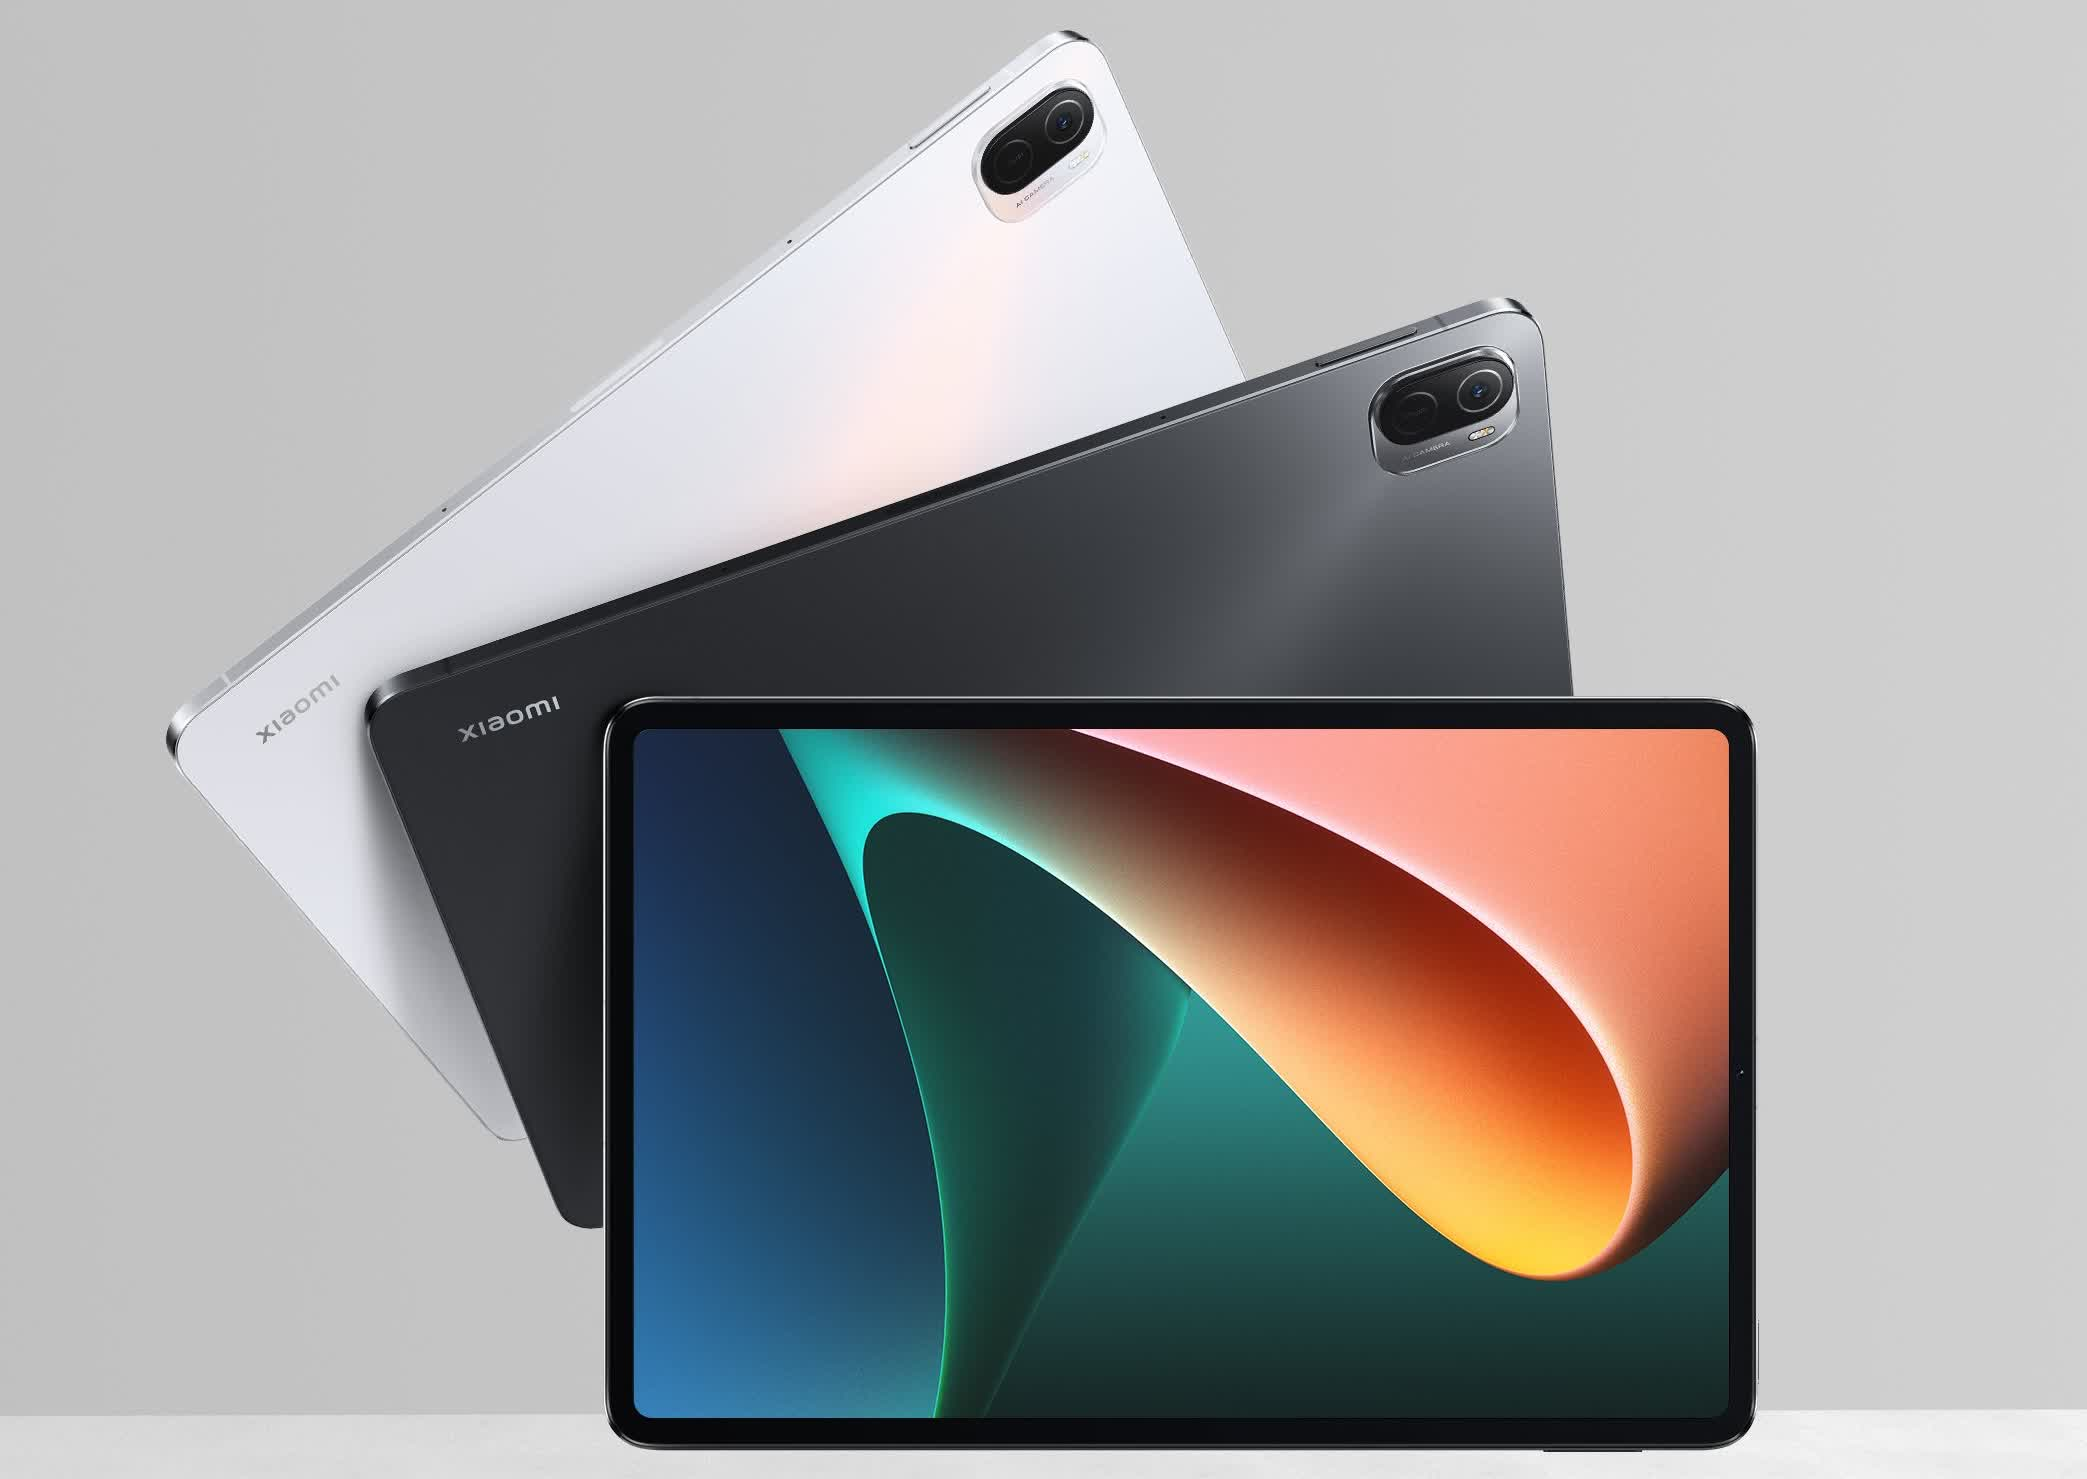 Xiaomi introduces the Pad 5 tablet alongside multiple new AIoT products